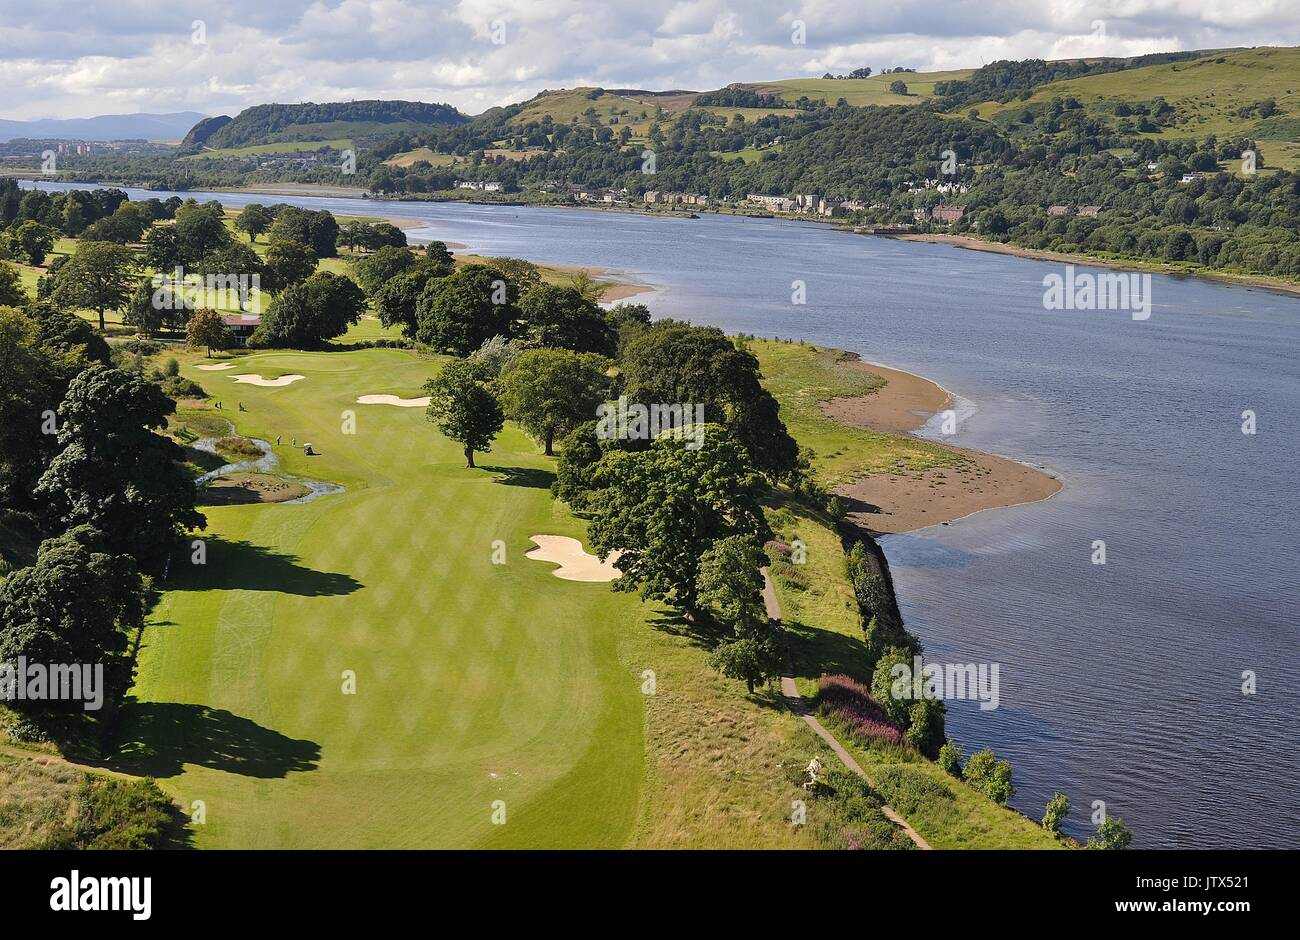 MARR HALL GOLF COURSE AND RIVER CLYDE - Stock Image